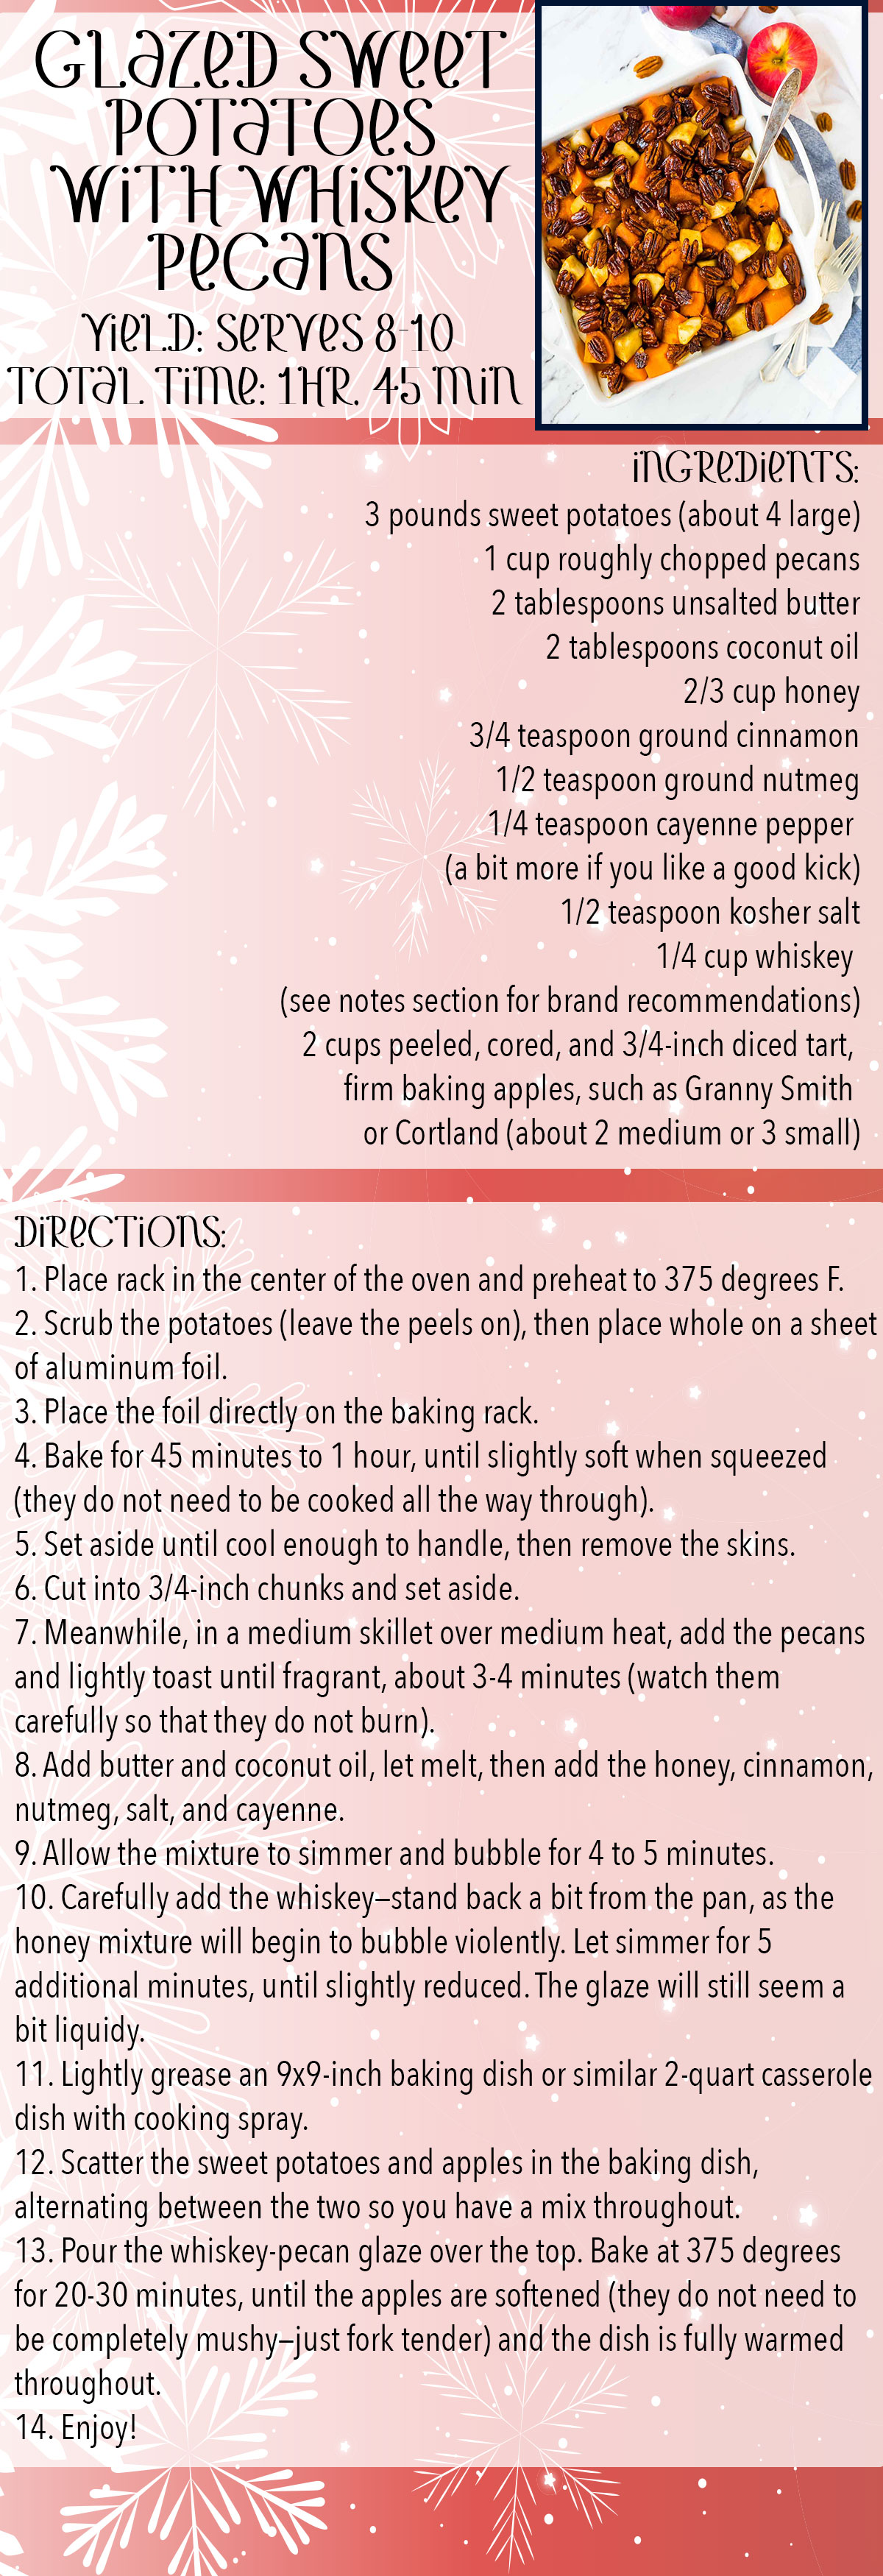 Glazed Sweet Potatoes With Whiskey Pecans Recipe Card